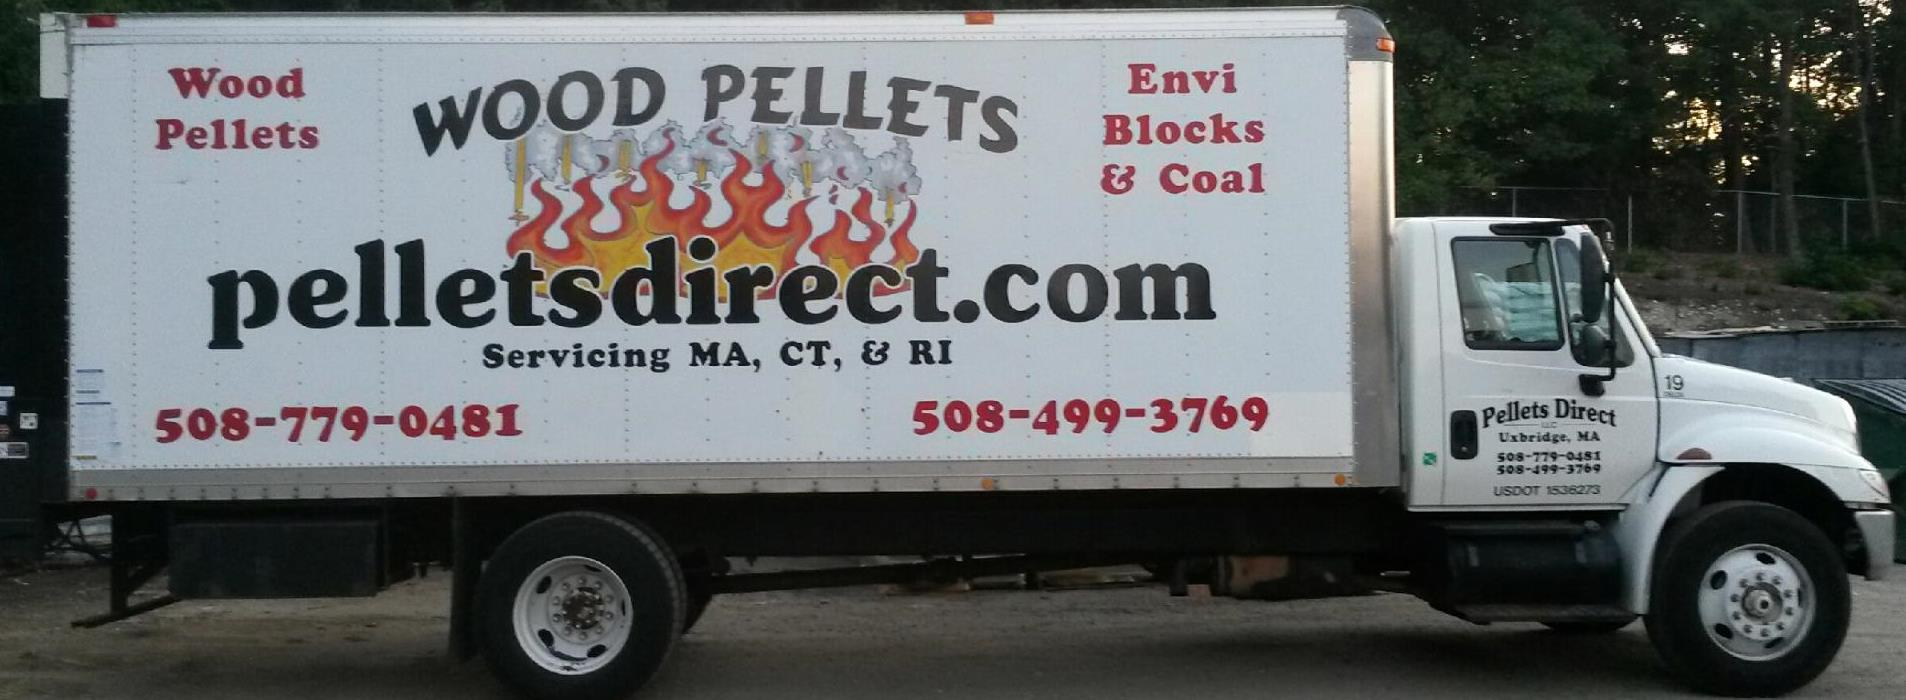 Pellets Direct LLC, (Owned by: Tammy Robbins) holds a Residential Contractor license and 1 other license according to the Rhode Island license board.. Their BuildZoom score of 83 does not rank in the top 50% of Rhode Island contractors. Their license was verified as active when we last checked.